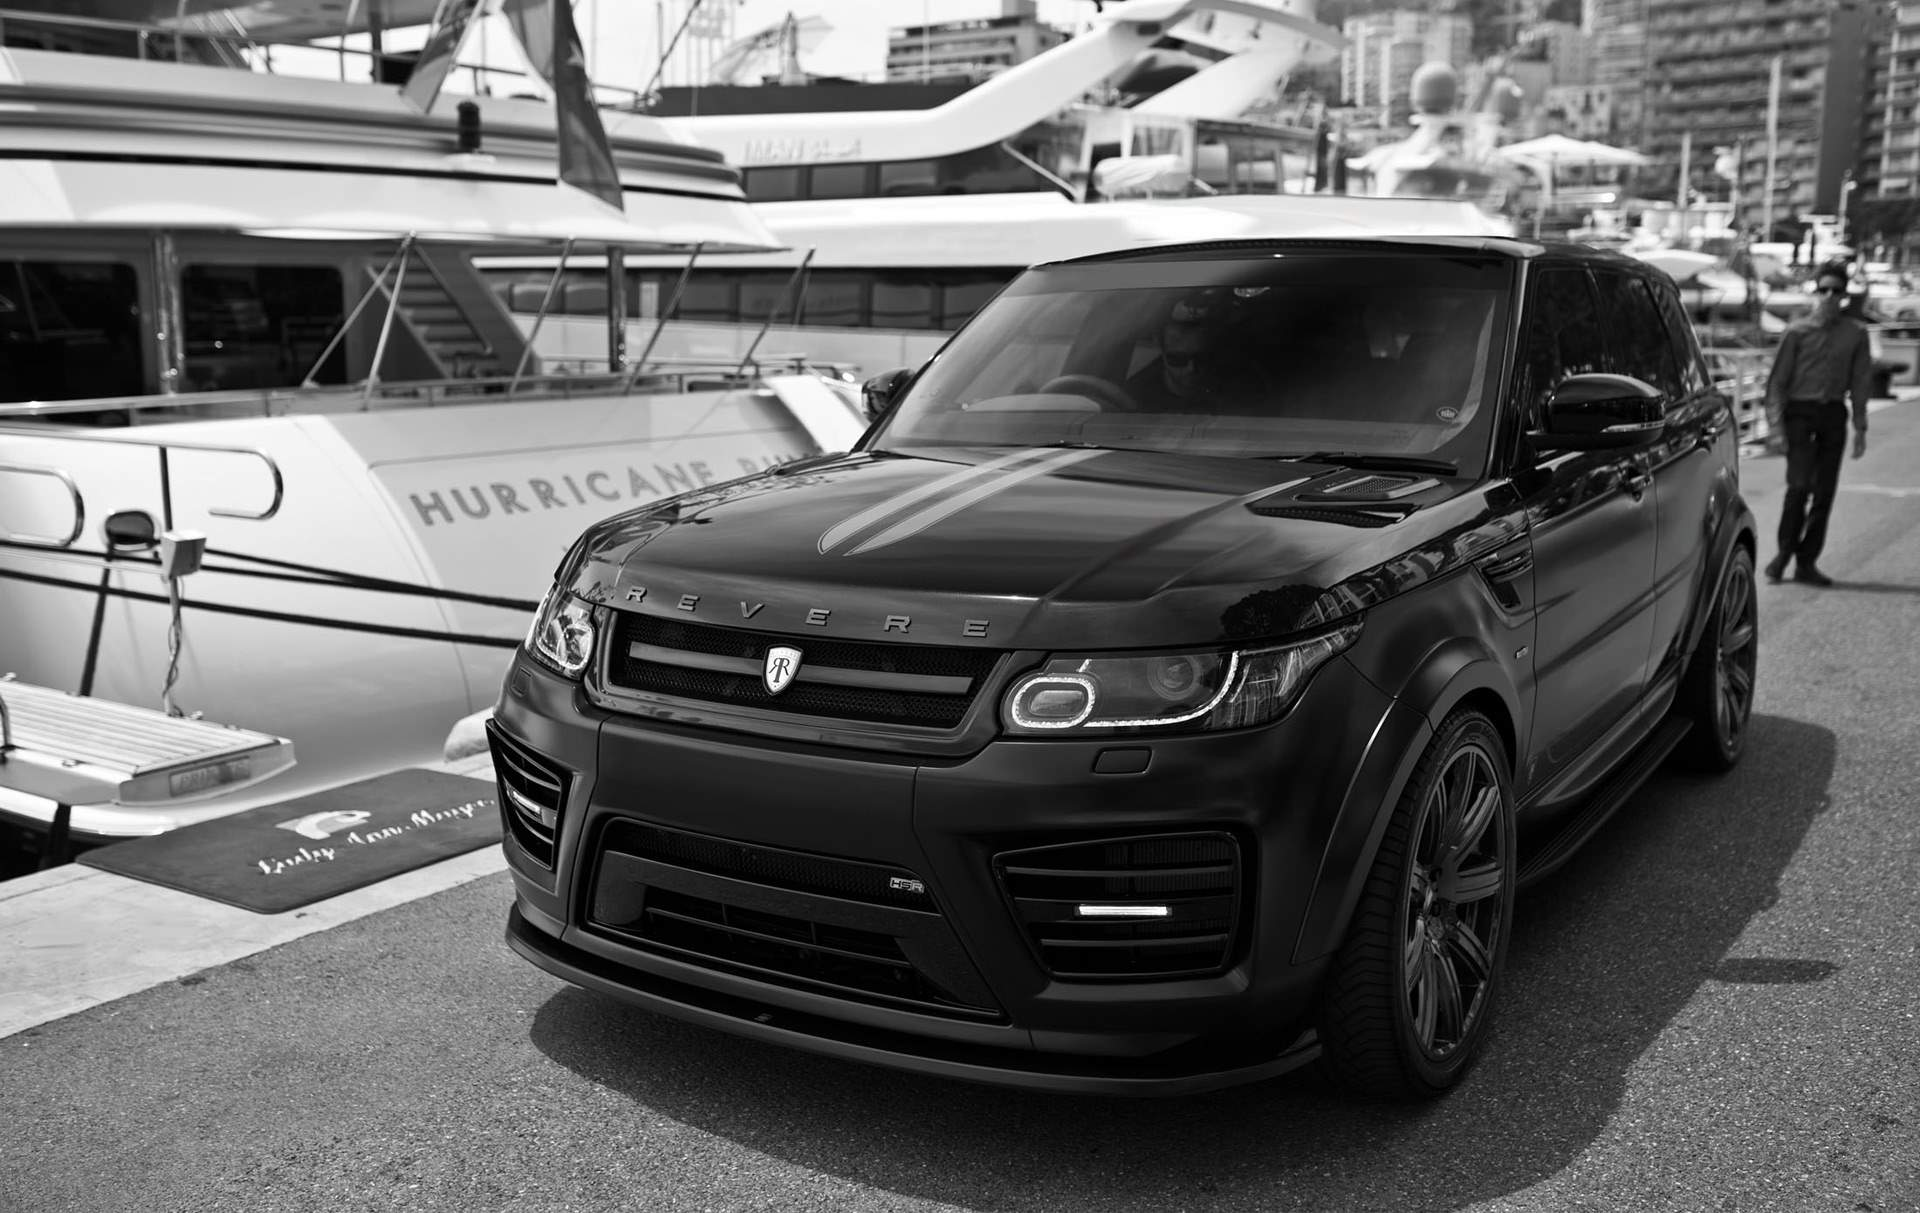 Revere HSR Wide Body Conversion for the Range Rover Sport